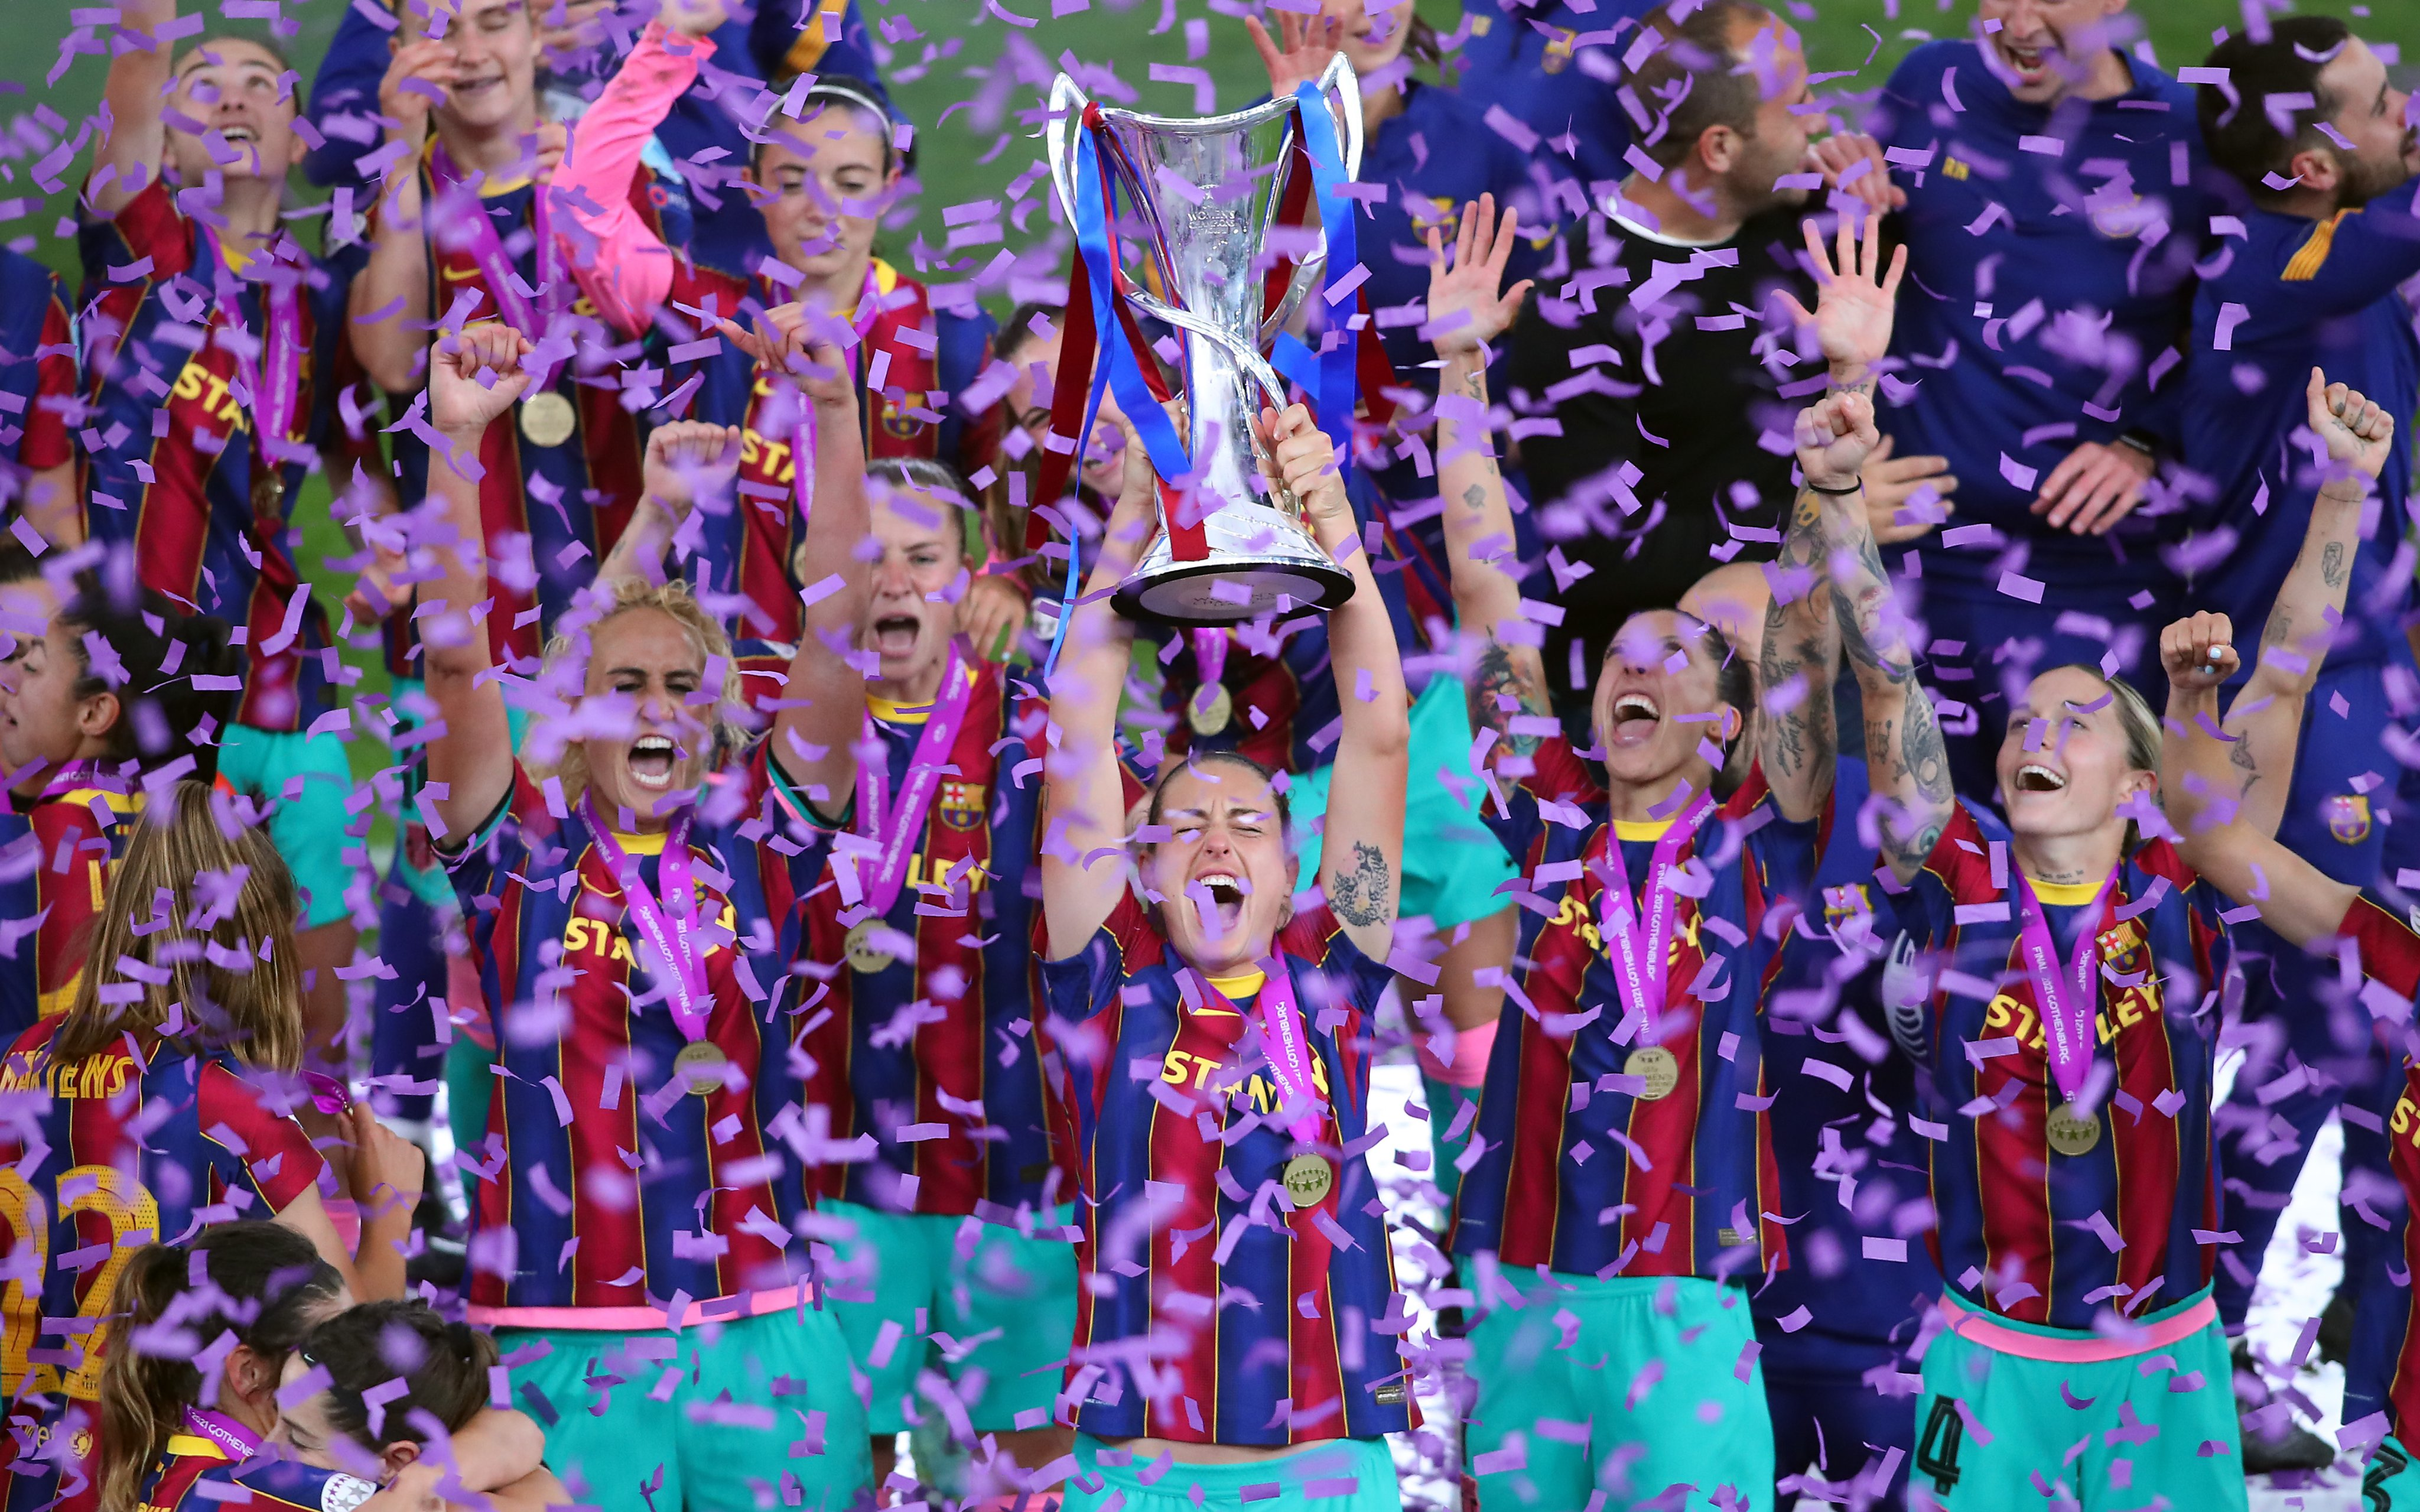 Chelsea Women 0-4 Barcelona Femeni: Ruthless first half sees Barca win first Women's Champions League title